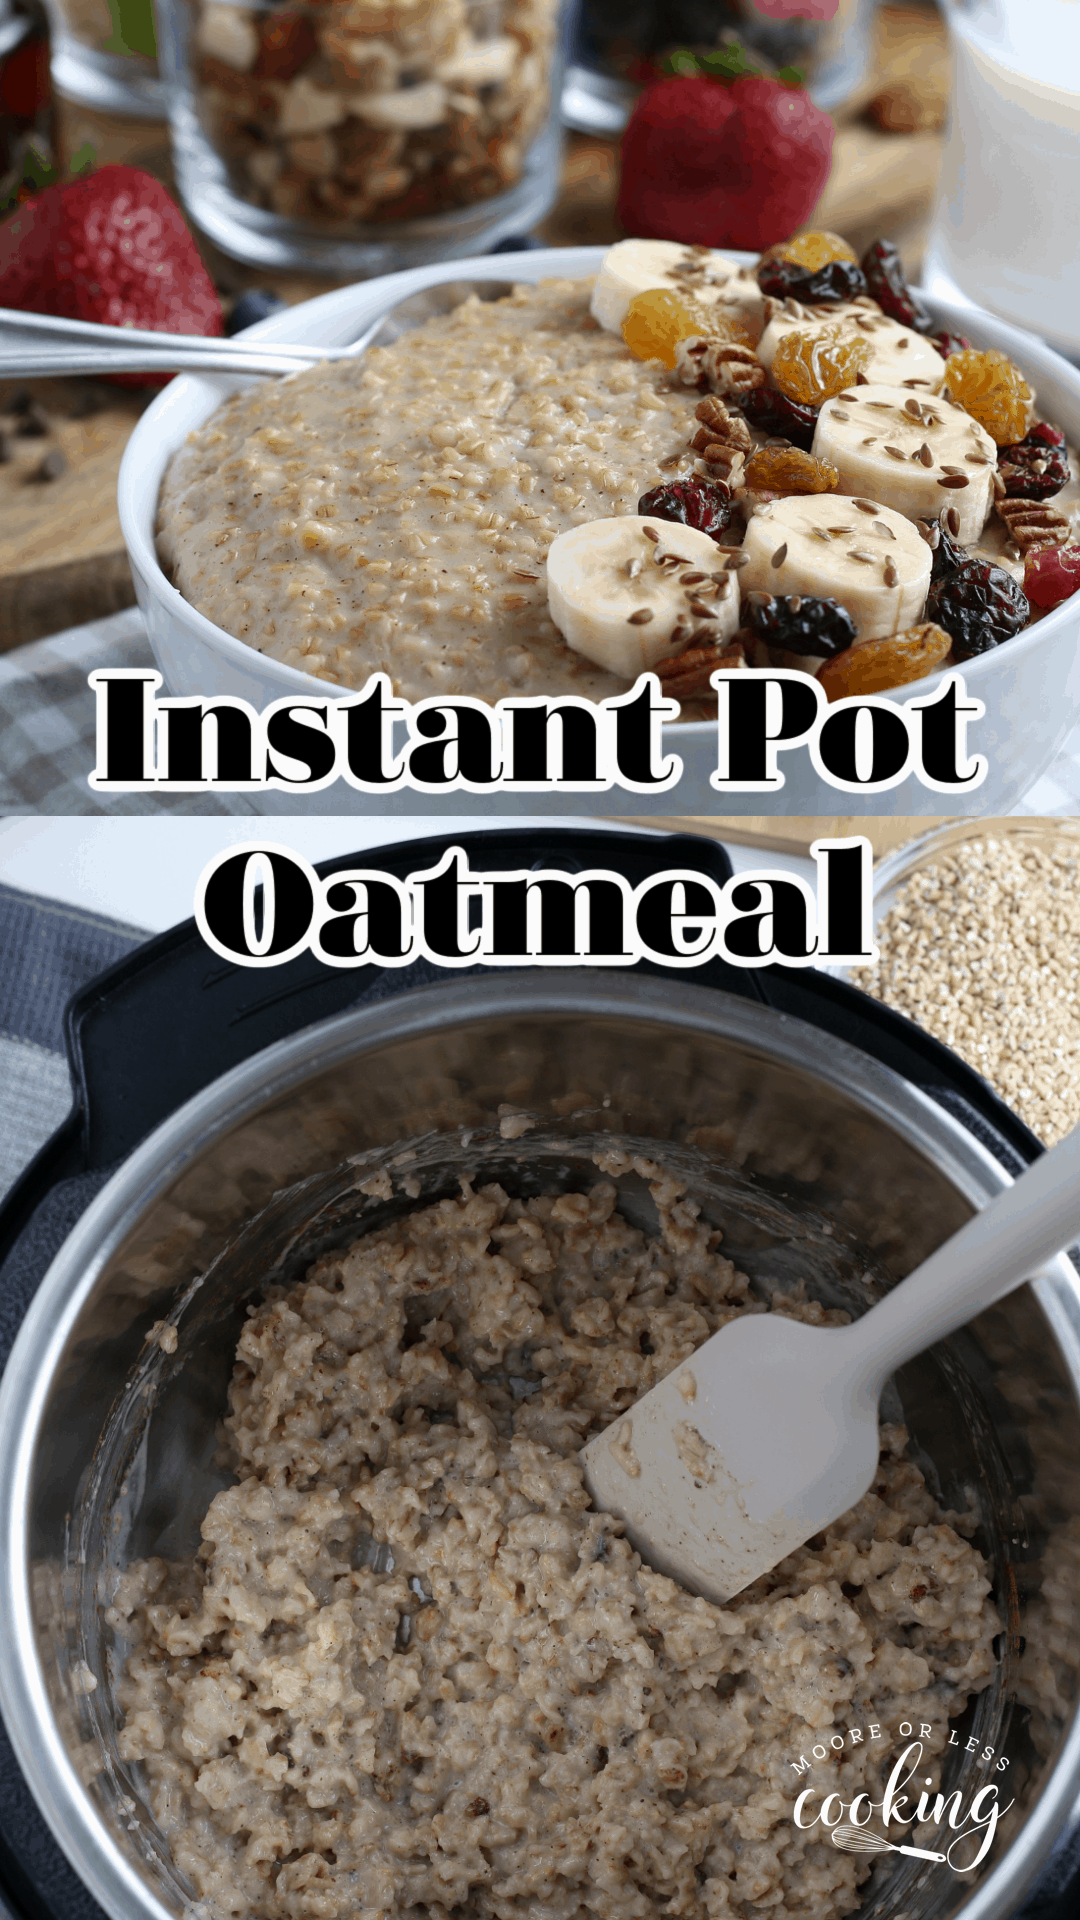 Instant Pot Oatmeal Creamy, healthy, and infinitely customizable with delicious toppings, this Instant Pot Oatmeal recipe is an easy way to make the perfect breakfast bowl, every time. via @Mooreorlesscook